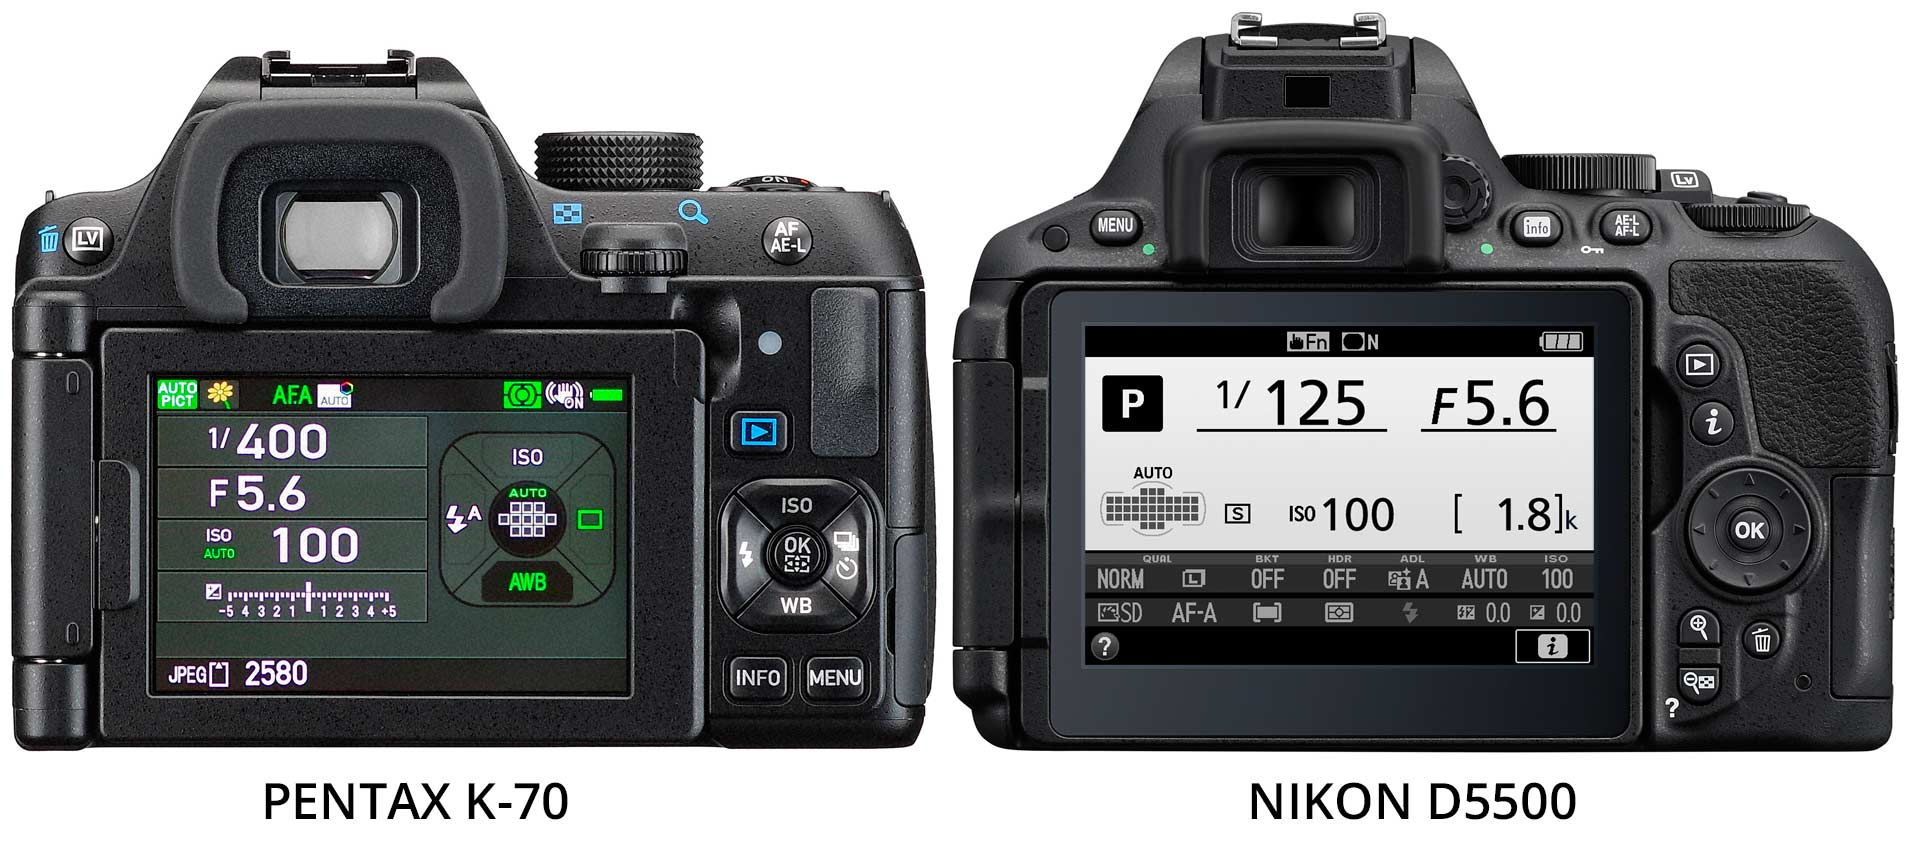 Nikon D5500 Vs D7200 >> Nikon D5500 vs Pentax K-70: Is the K-70 Cheaper and Better ...